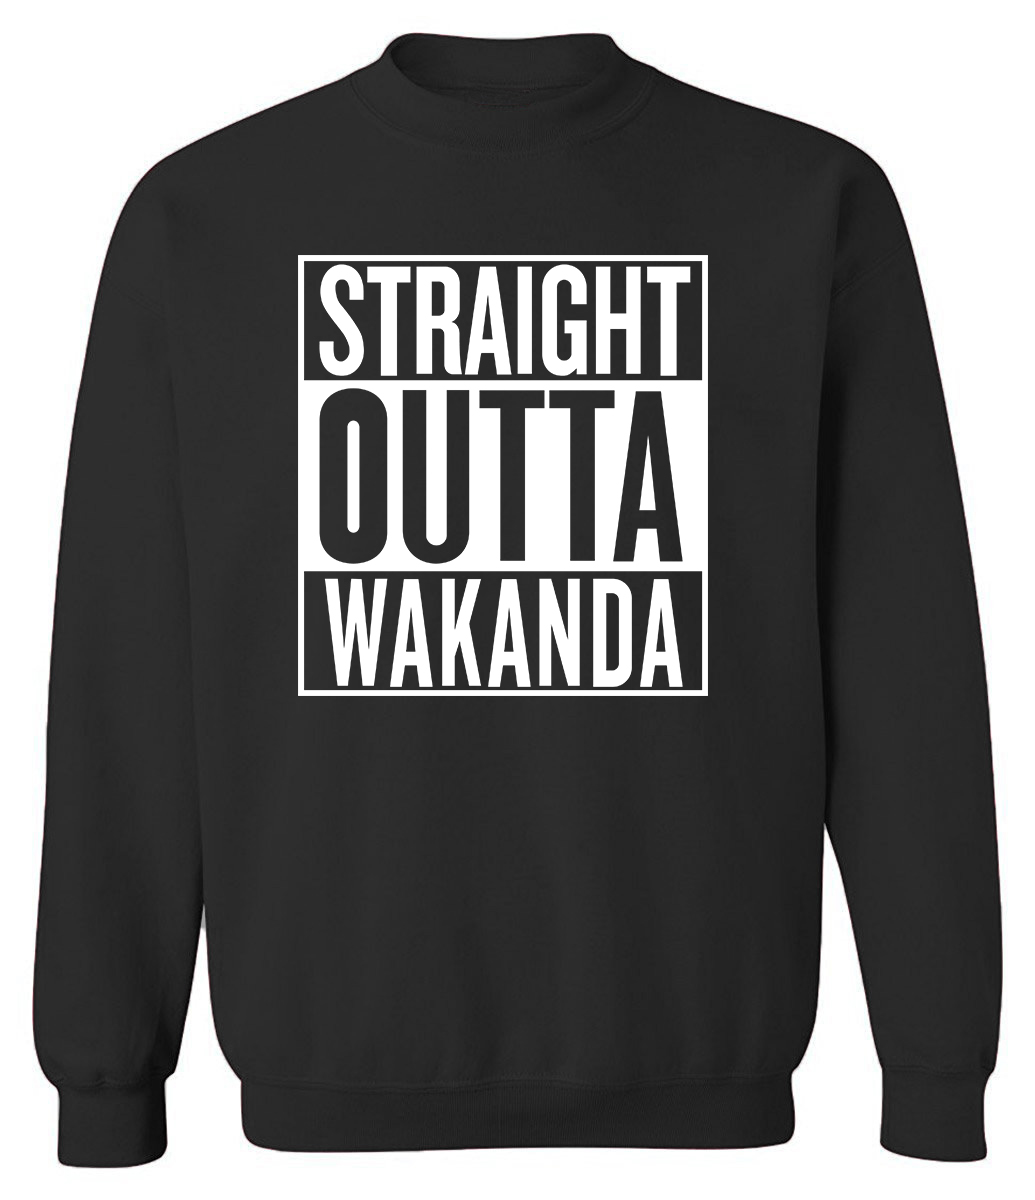 New Fashion Black Panther Sweatshirts For Men 2019 Autumn Winter Hoodies STRAIGHT OUTTA WAKANDA Hip Hop Men's Sportswear Hoody